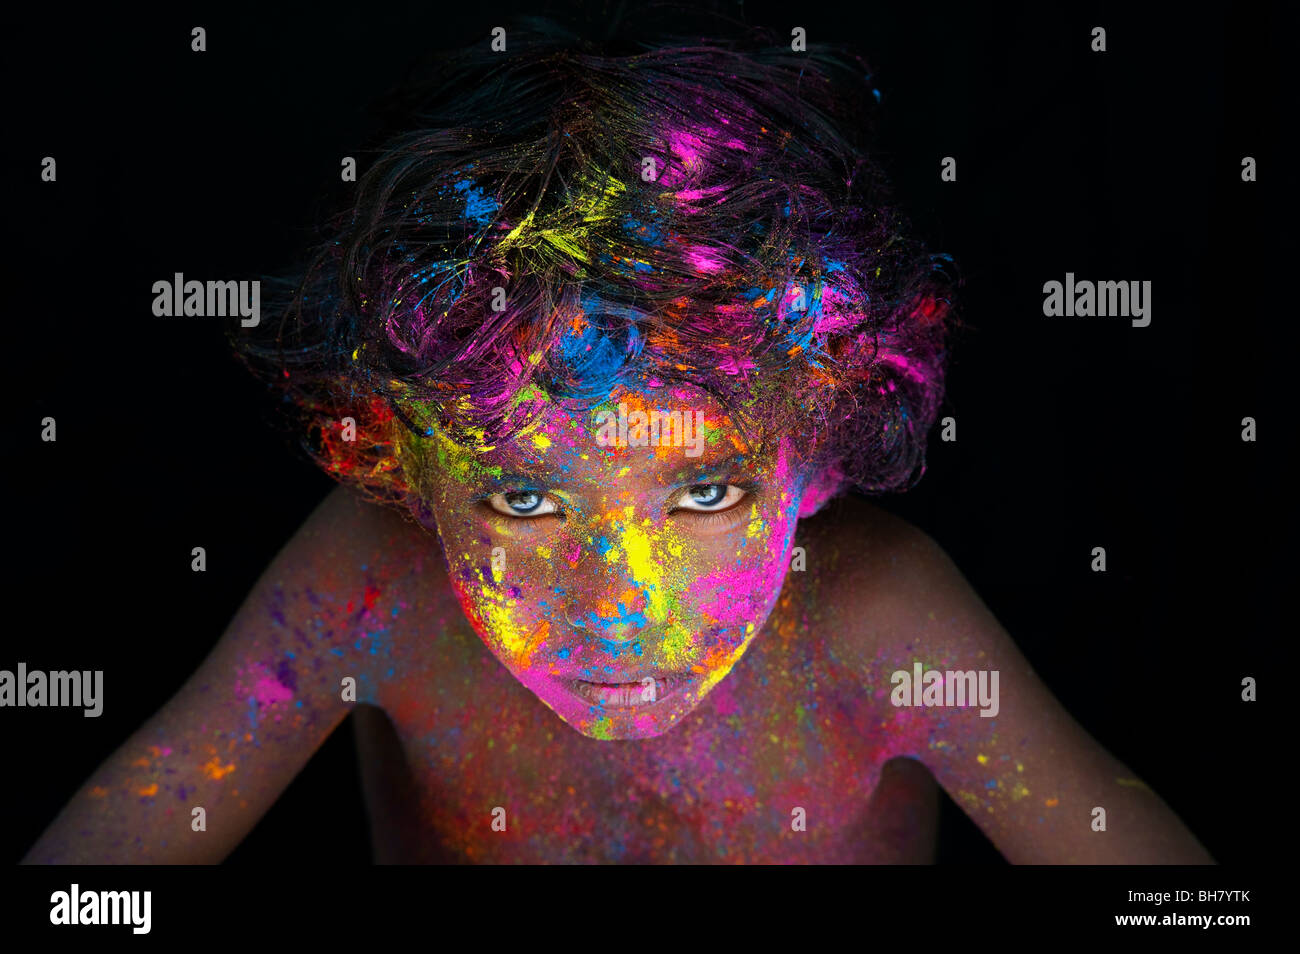 Young Indian boy covered in coloured powder pigment against a black background. India - Stock Image